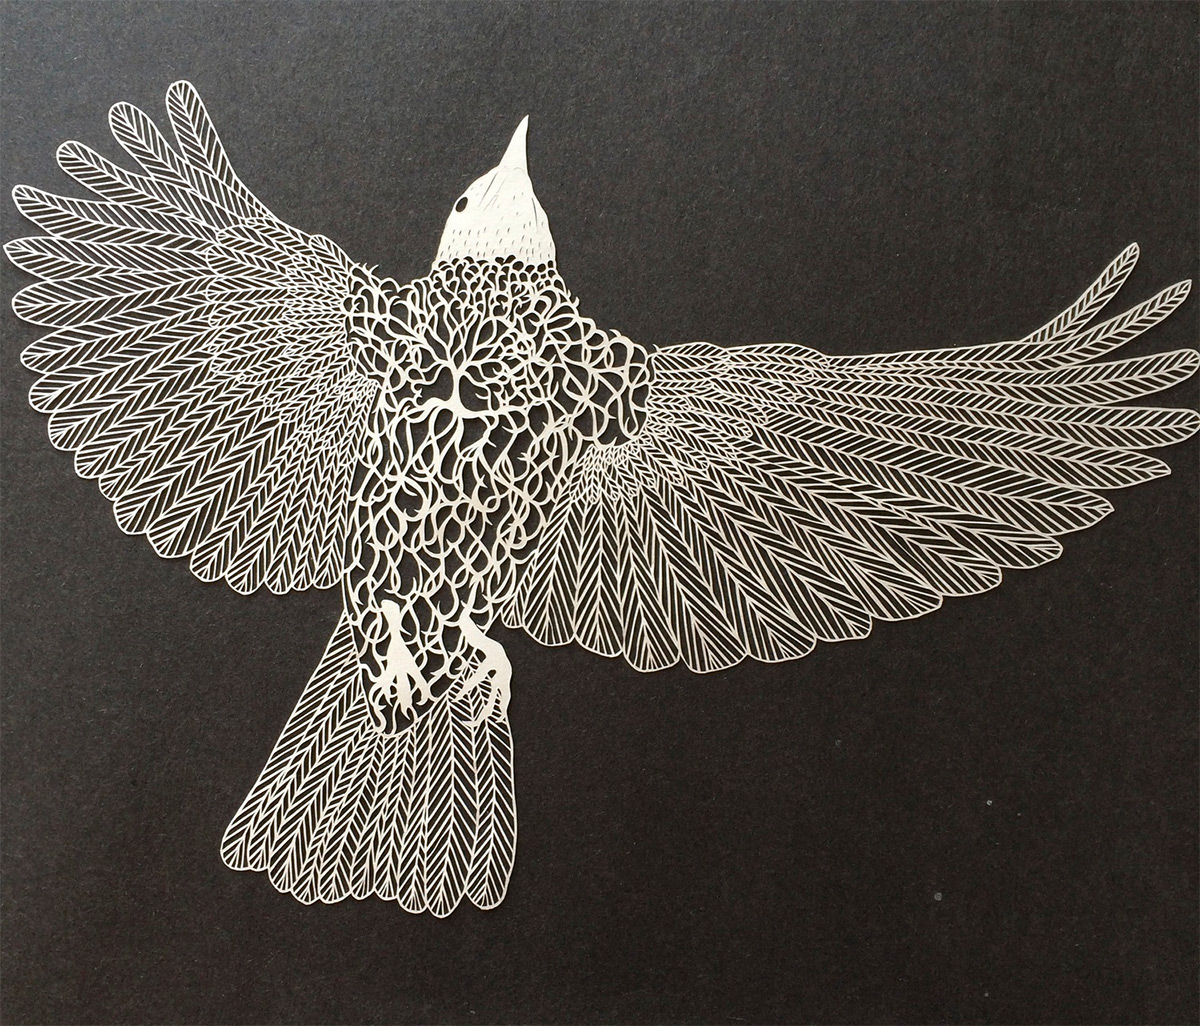 Paper Bird Sculpture Meticulously Cut Paper Illustrations By Maude White Colossal